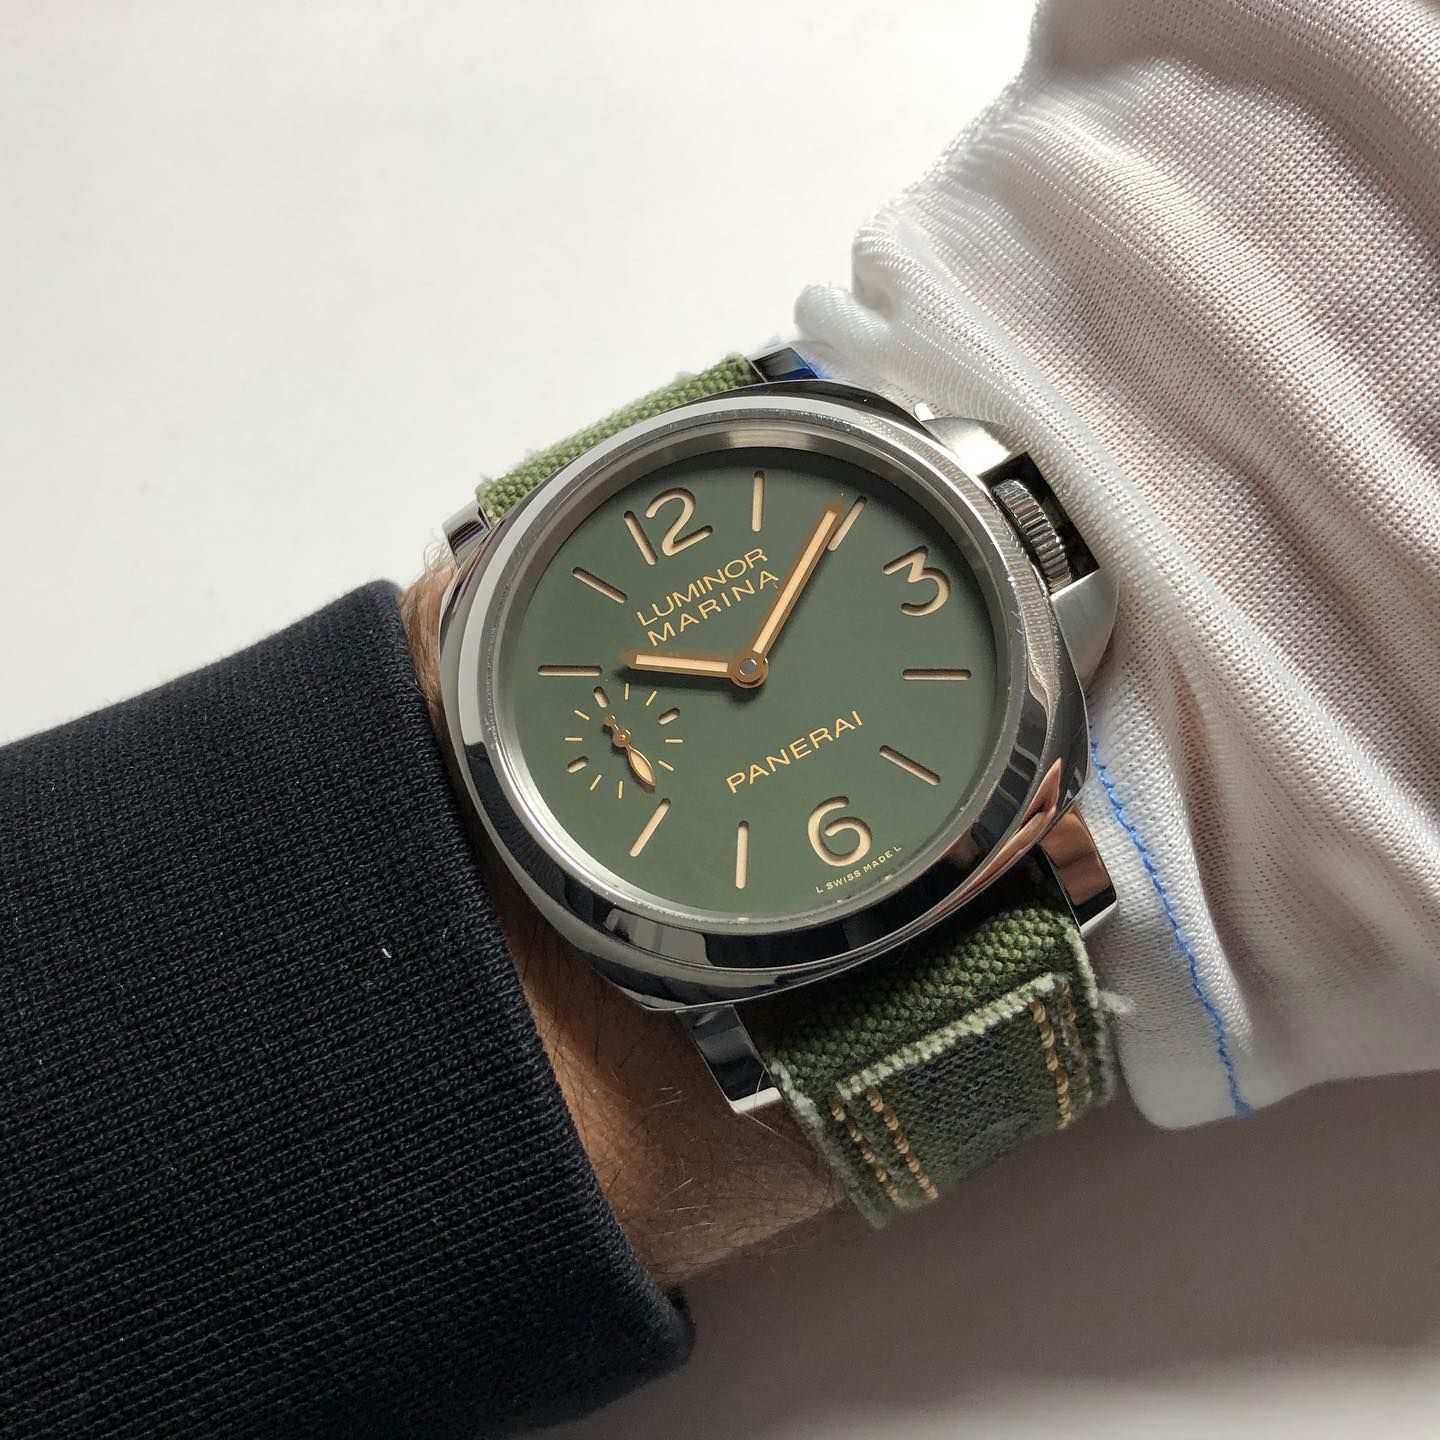 Check Out This Cool Strap For This Pam911 Made By Combat Straps Panerai Paneristi Military Militarylife Green Watchp In 2020 Beautiful Watches Watches Wrist